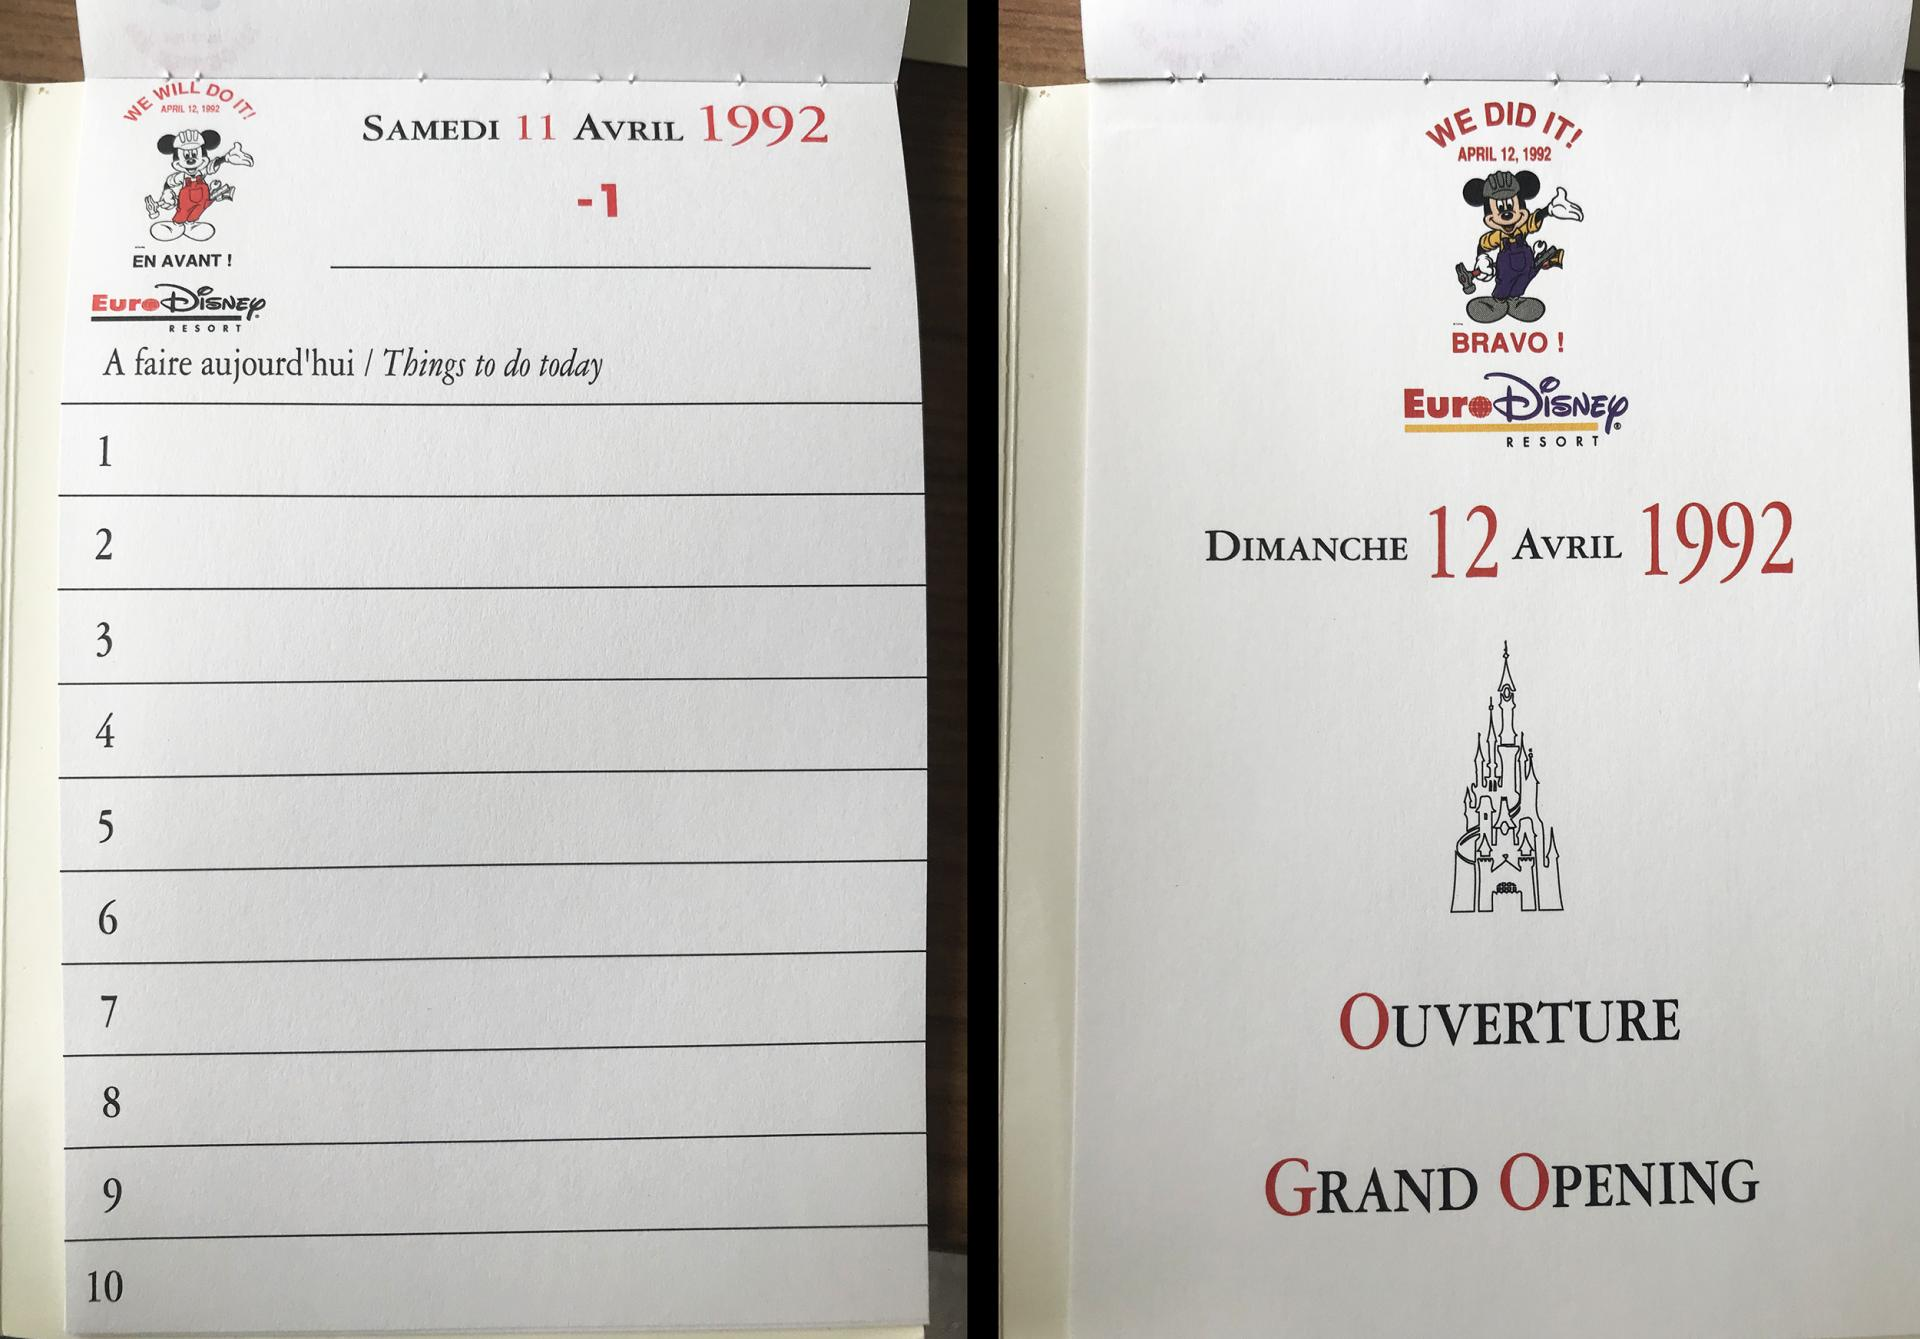 Grand Opening du 12 avril 1992 Disneyland Paris